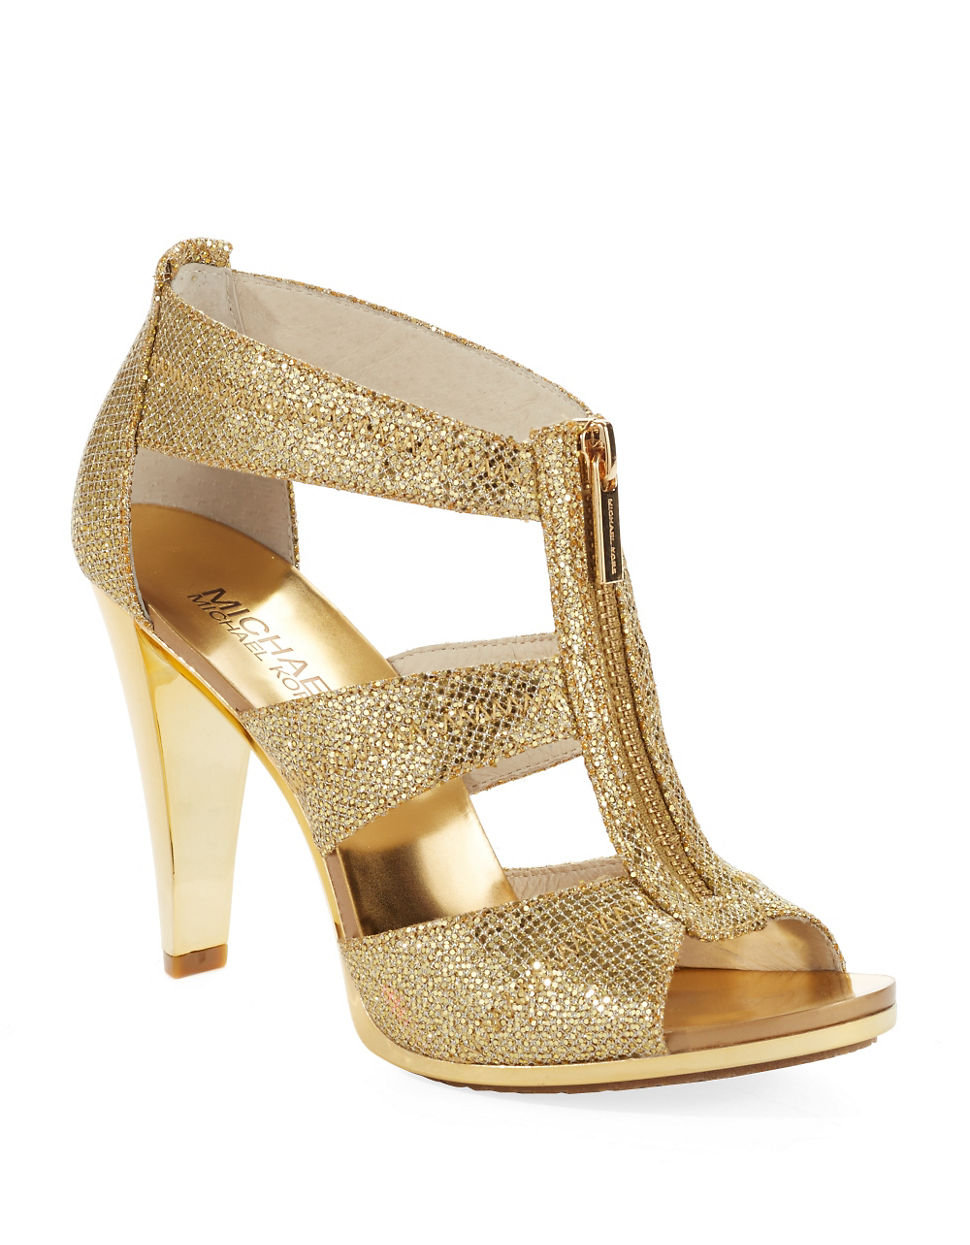 High Heels Shoes With Glitter